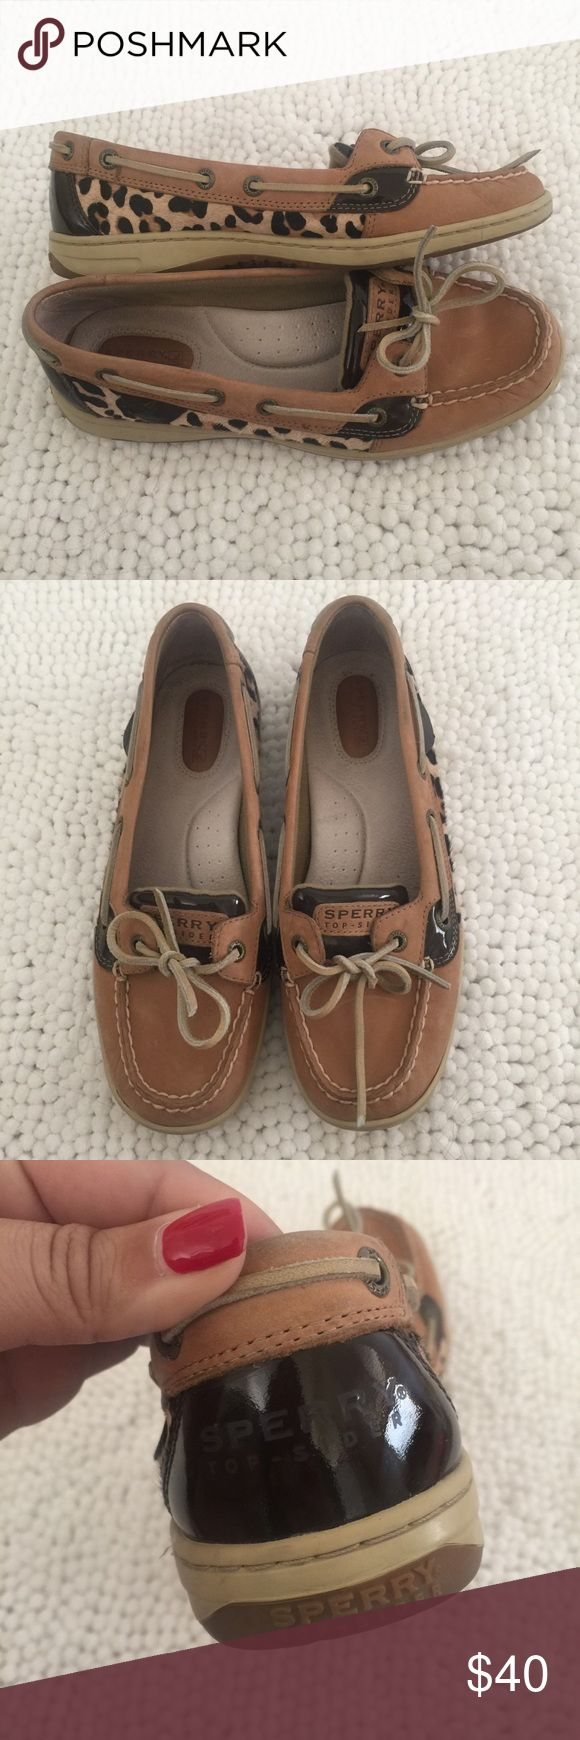 EUC Leopard Sperry Deck Shoes Excellent condition, worn a hand full of times if that! Leopard pattern makes these so different than normal deck shoes. Size 8. Sperry Top-Sider Shoes